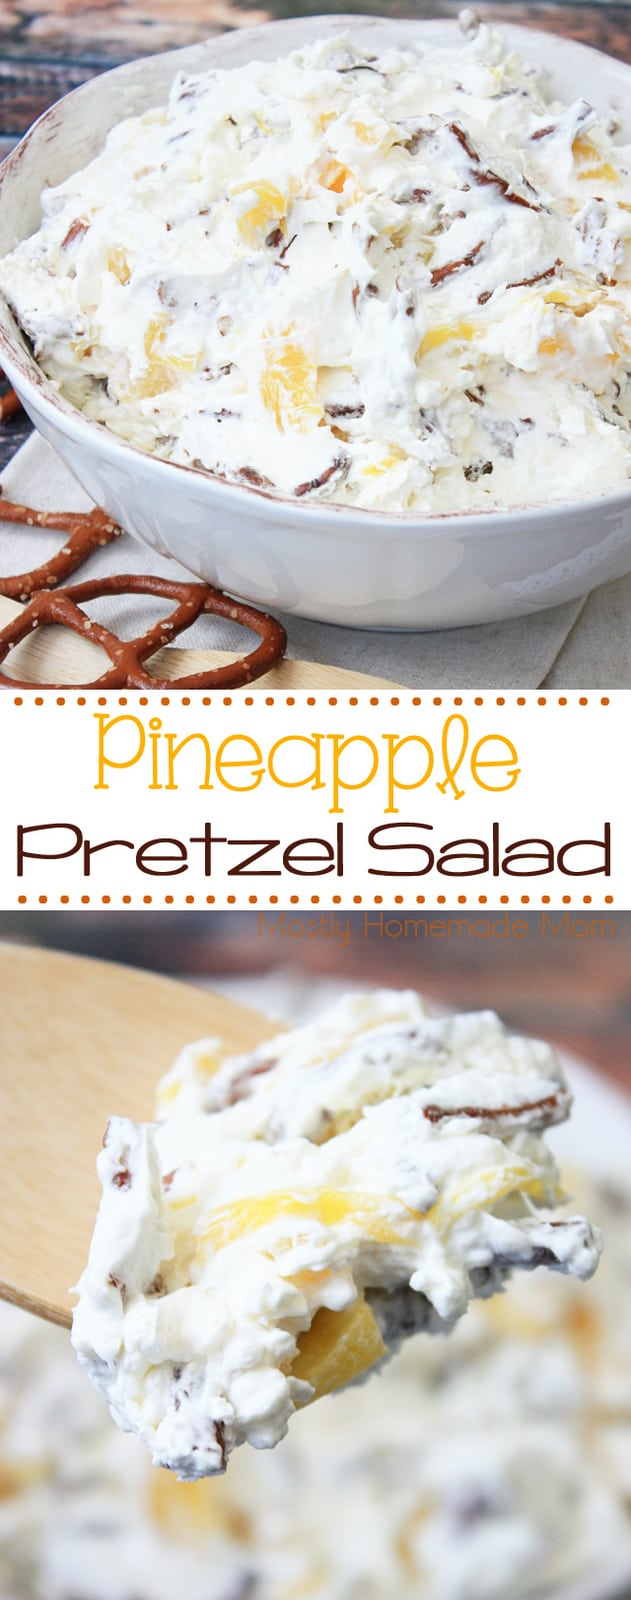 Pineapple Pretzel Salad - the perfect blend of salty and sweet! Thin pretzels mixed with cream cheese, whipped cream, and pineapple chunks.